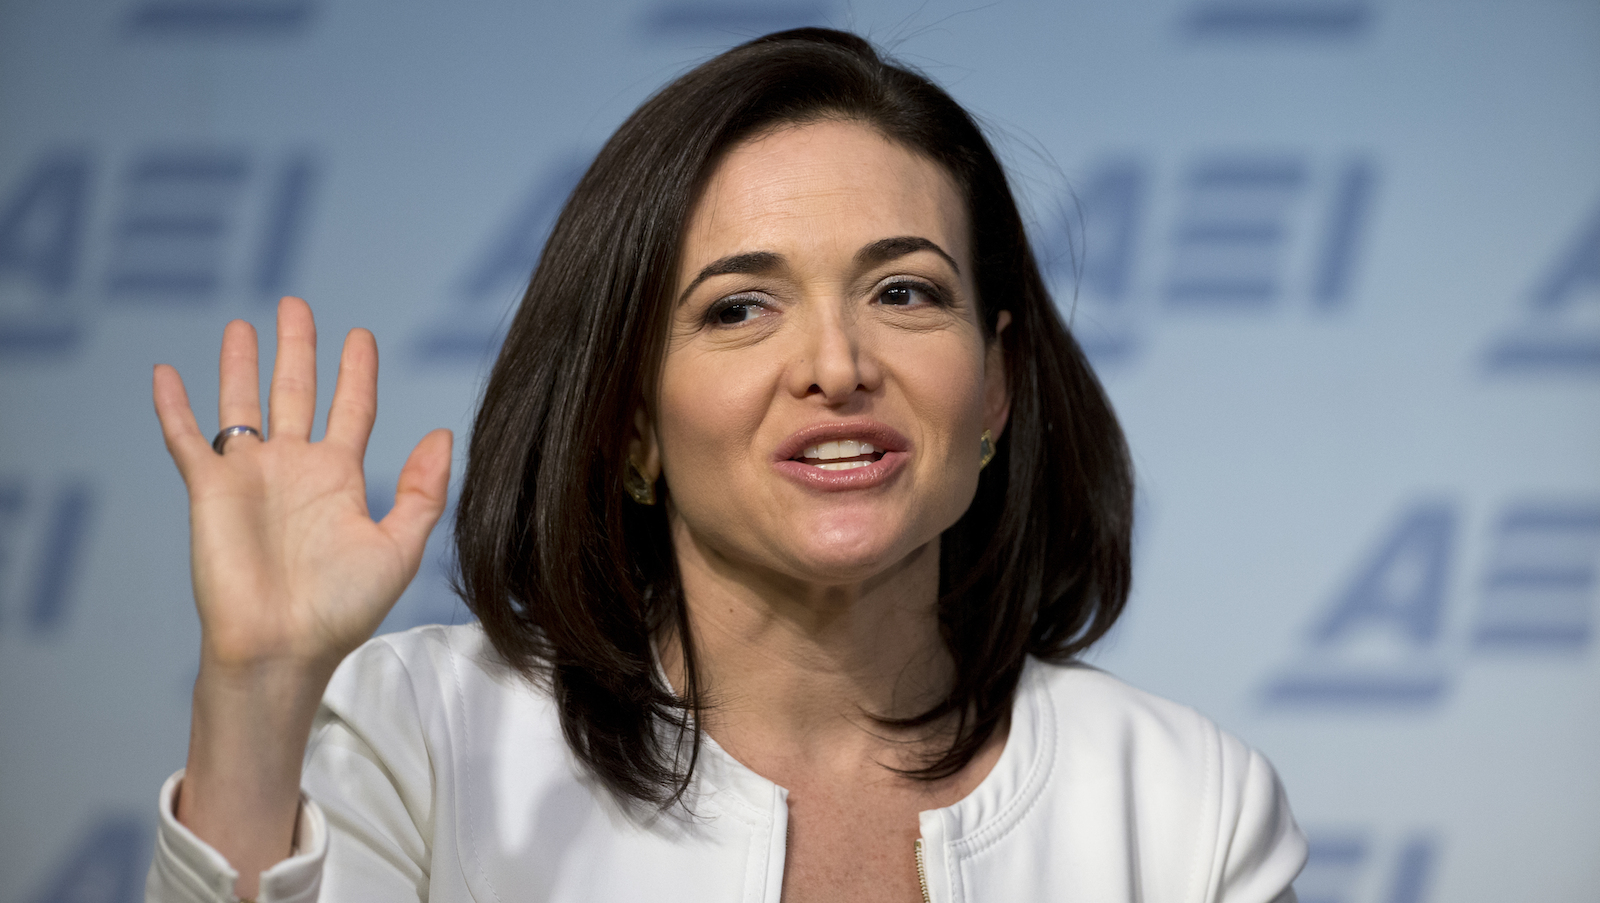 Facebook Chief Operating Officer Sheryl Sandberg speaks at the American Enterprise Institute, Wednesday, June 22, 2016 in Washington. (AP Photo/Alex Brandon)